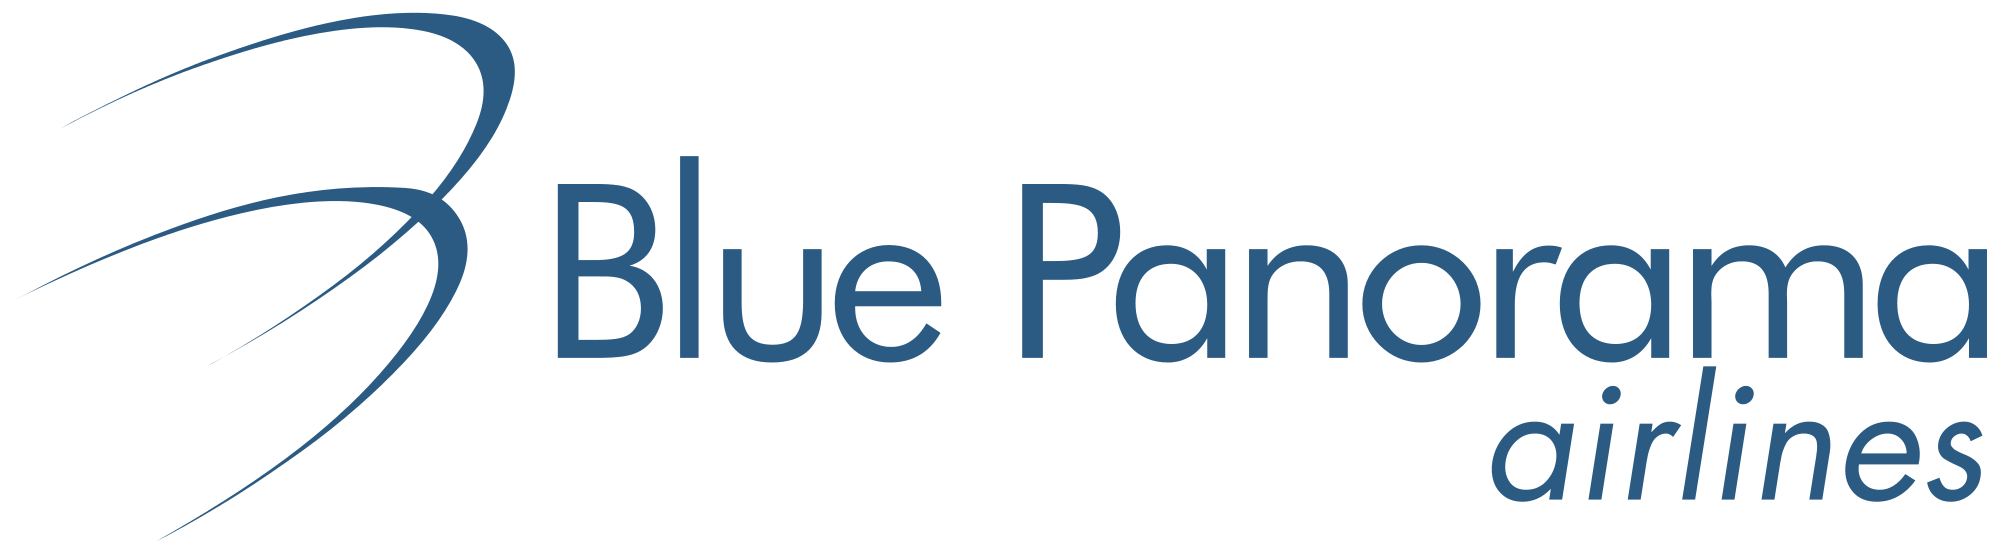 Télephone information entreprise  Blue Panorama Airlines